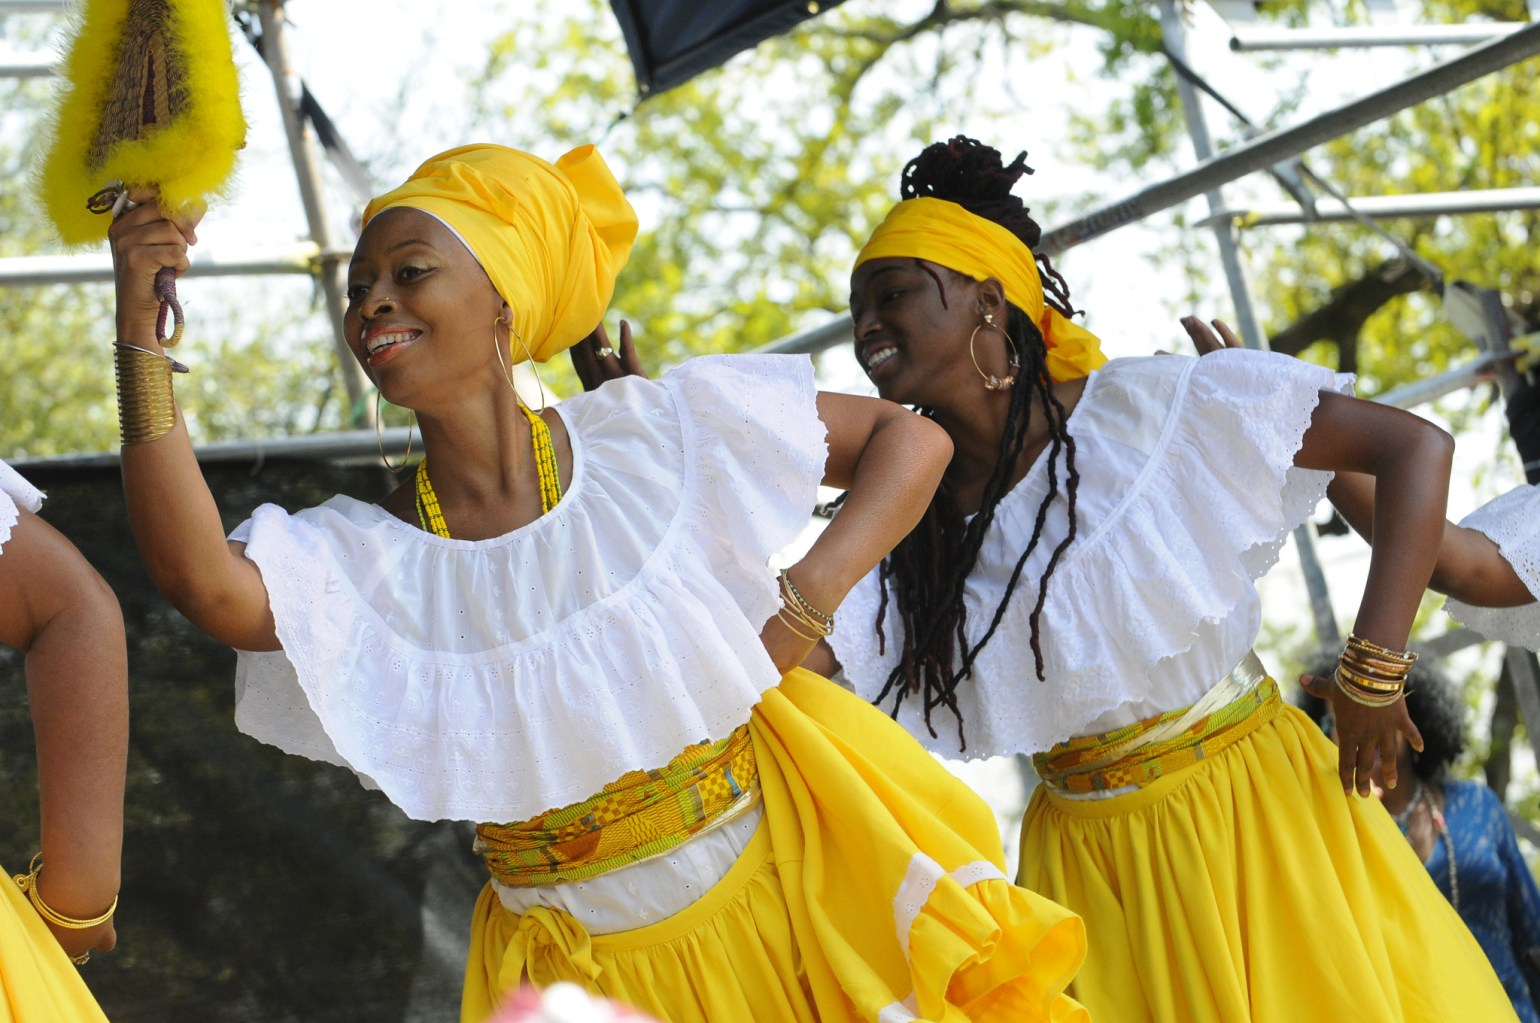 African dancers at Congo Square New World Rhythms Festival. (Photo: Cheryl Gerber)